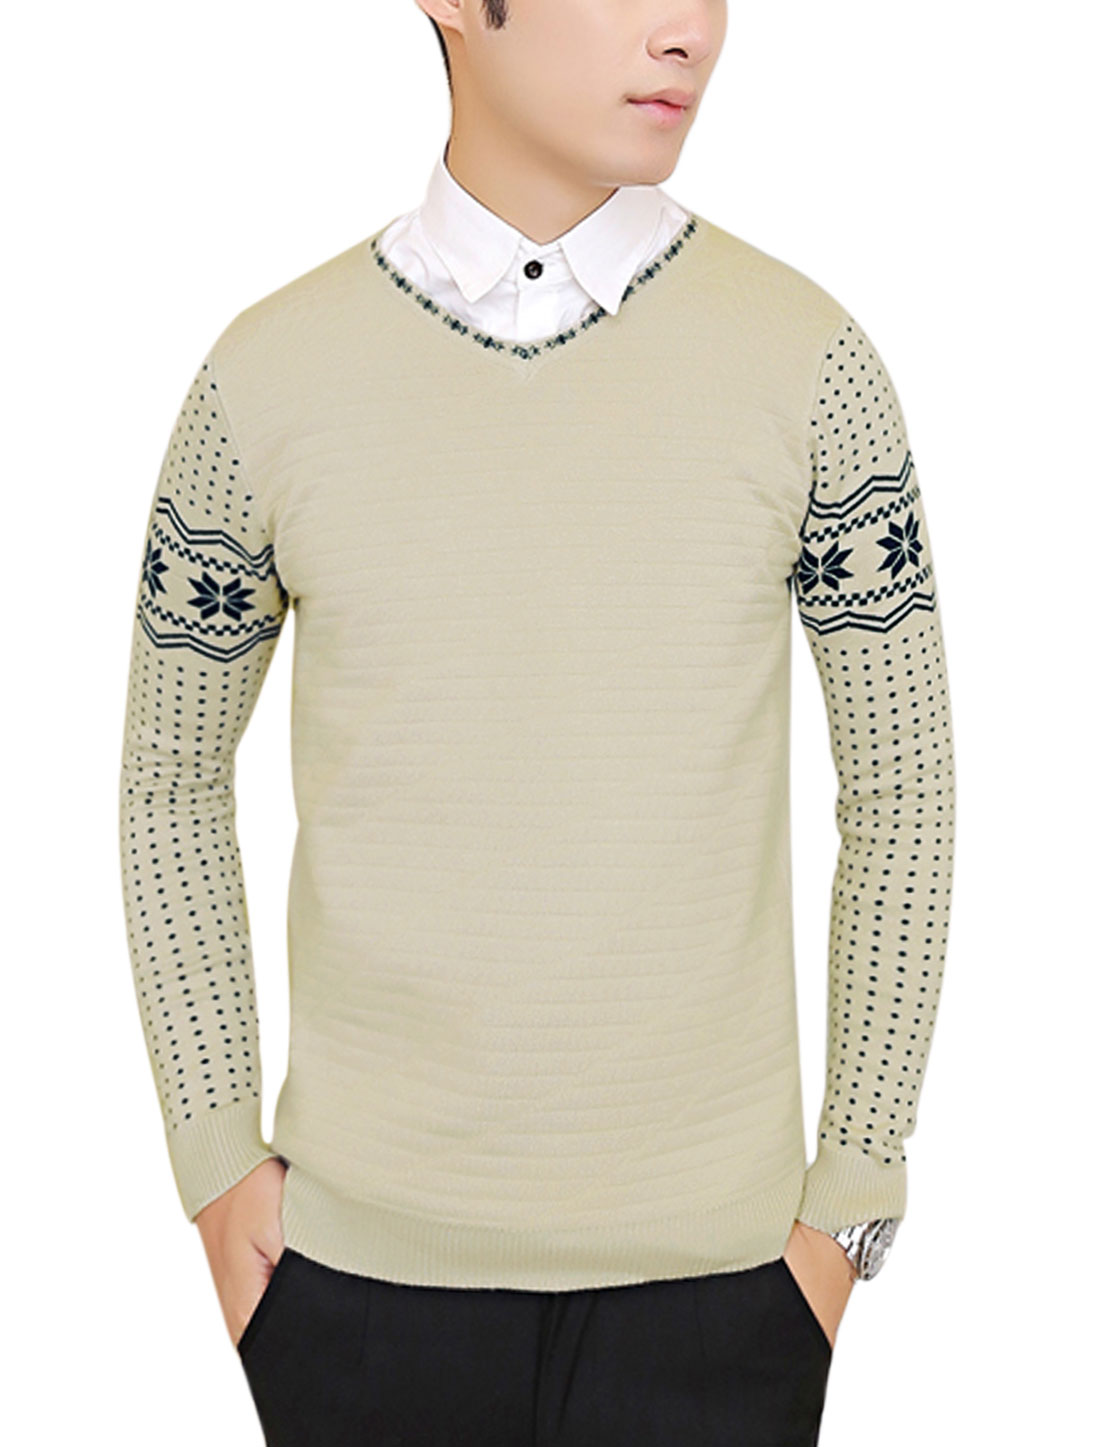 New Style Casual Pullover Geometric Pattern Knit Shirt for Men Beige M